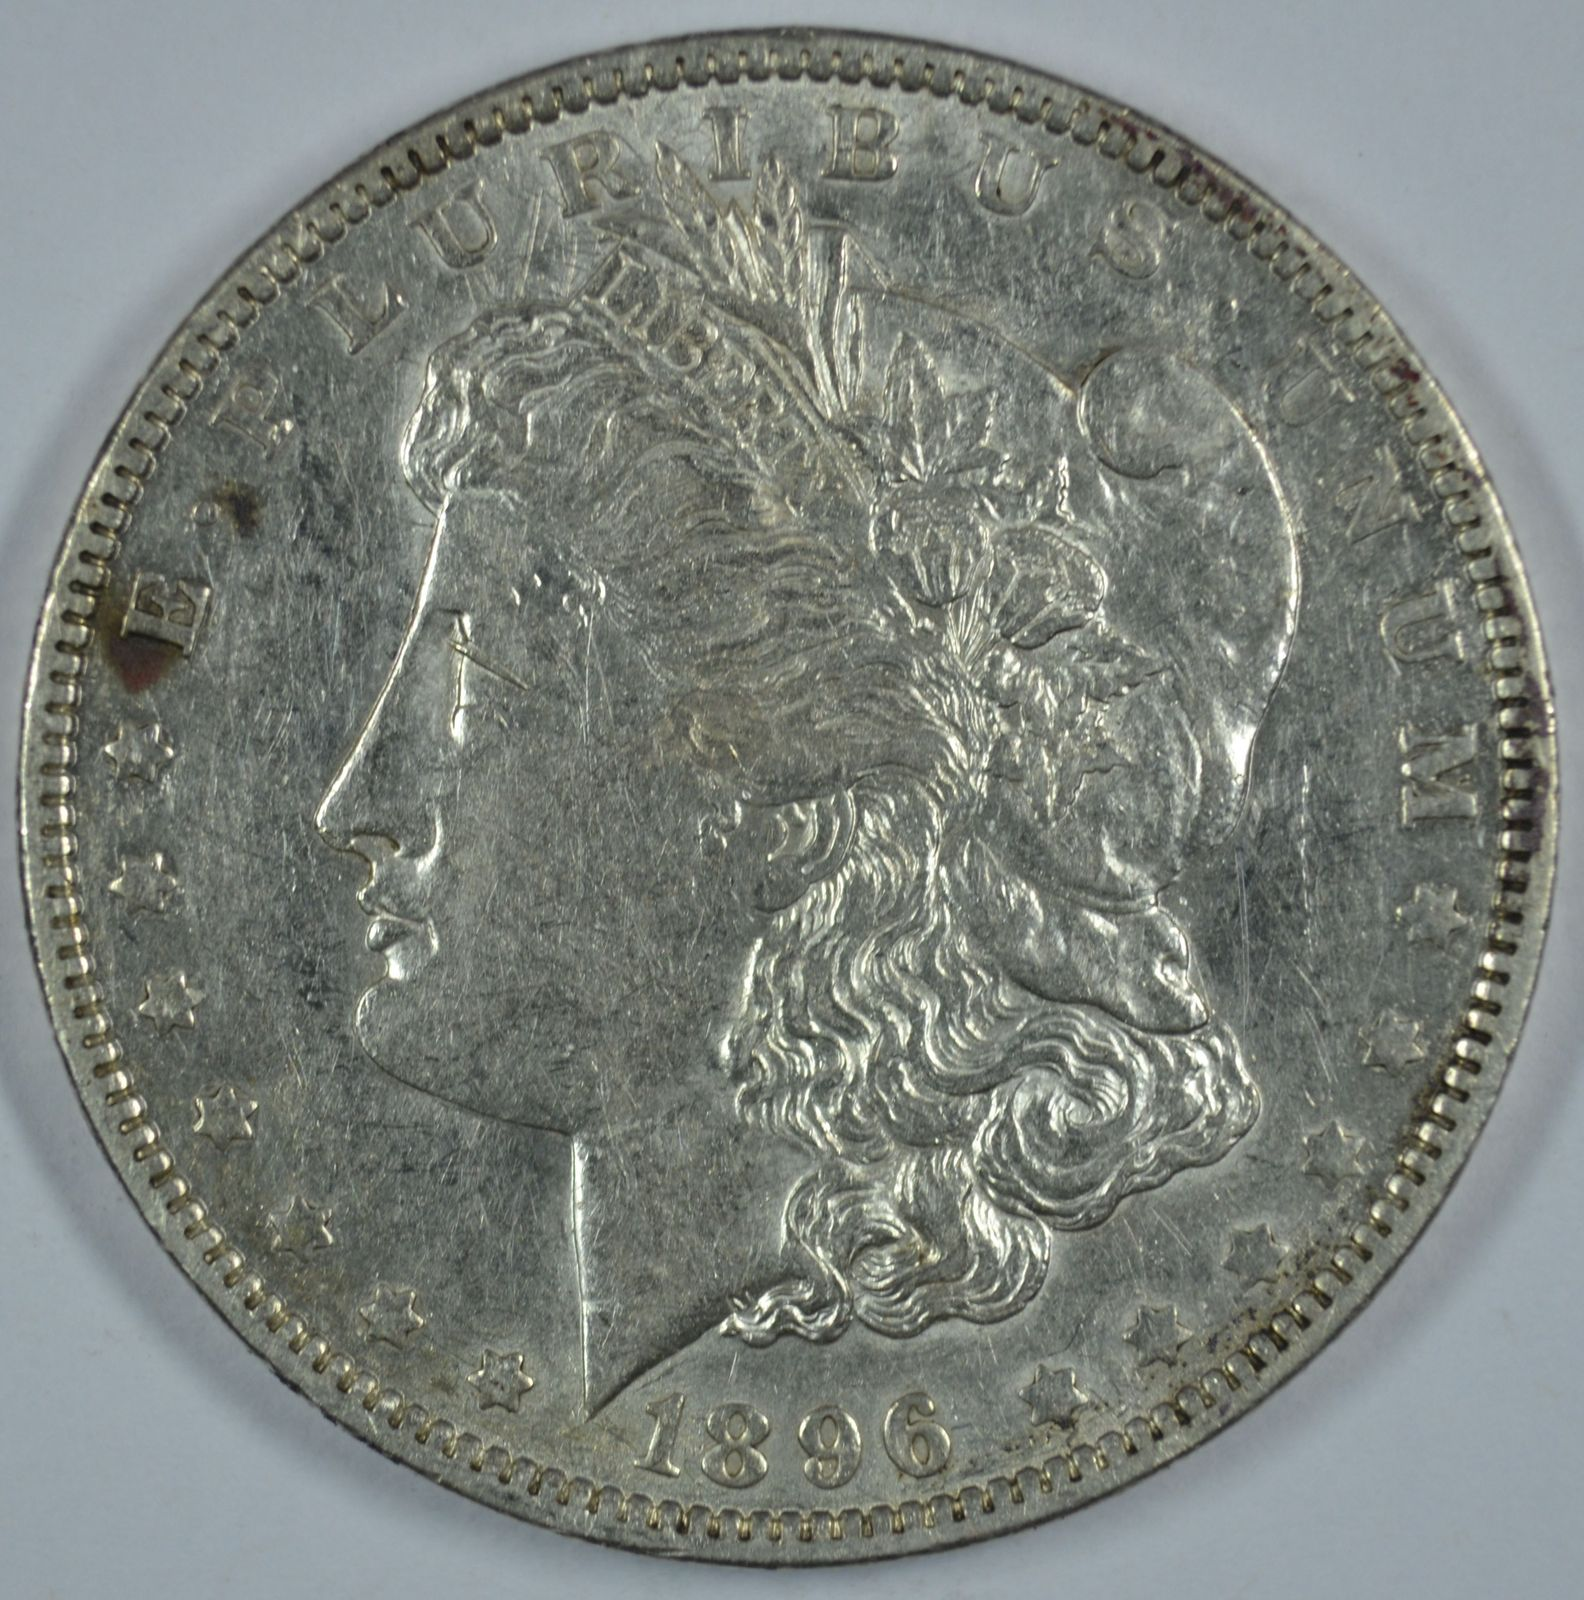 Primary image for 1896 O Morgan silver dollar - VF+ details